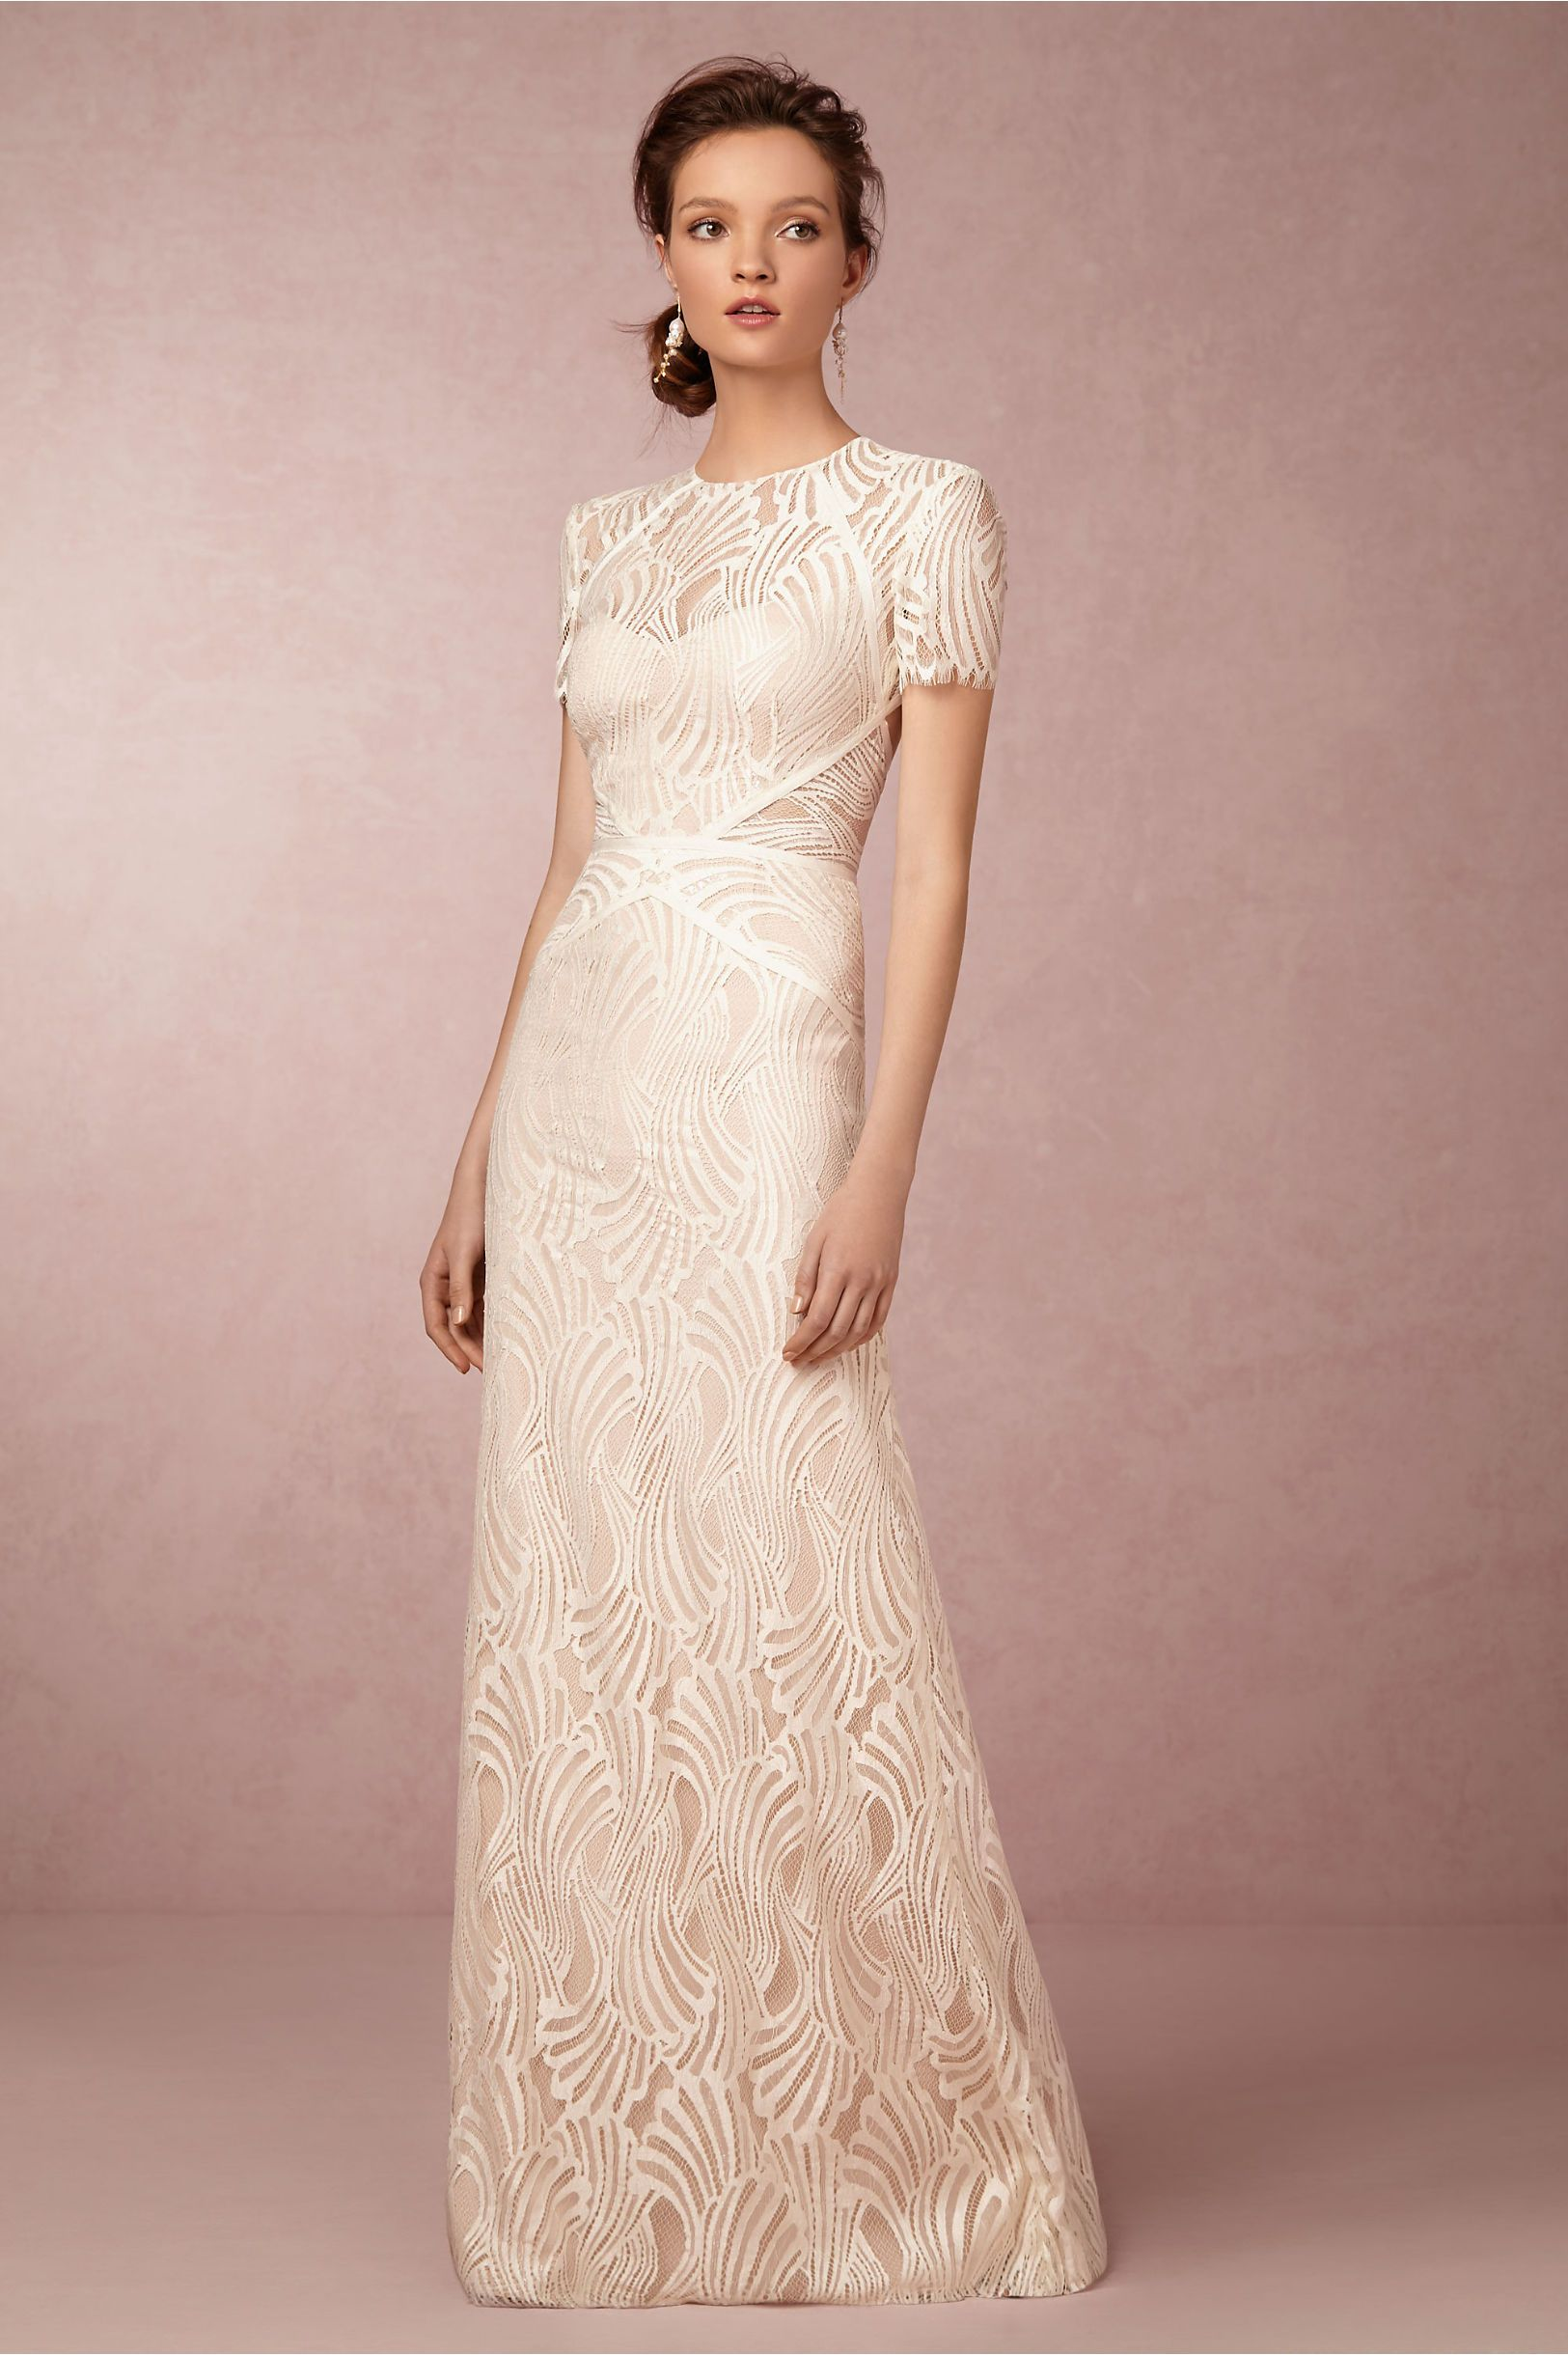 Spring 2015 BHLDN Collection is Here | Dibujos del, Dibujos de y Tela